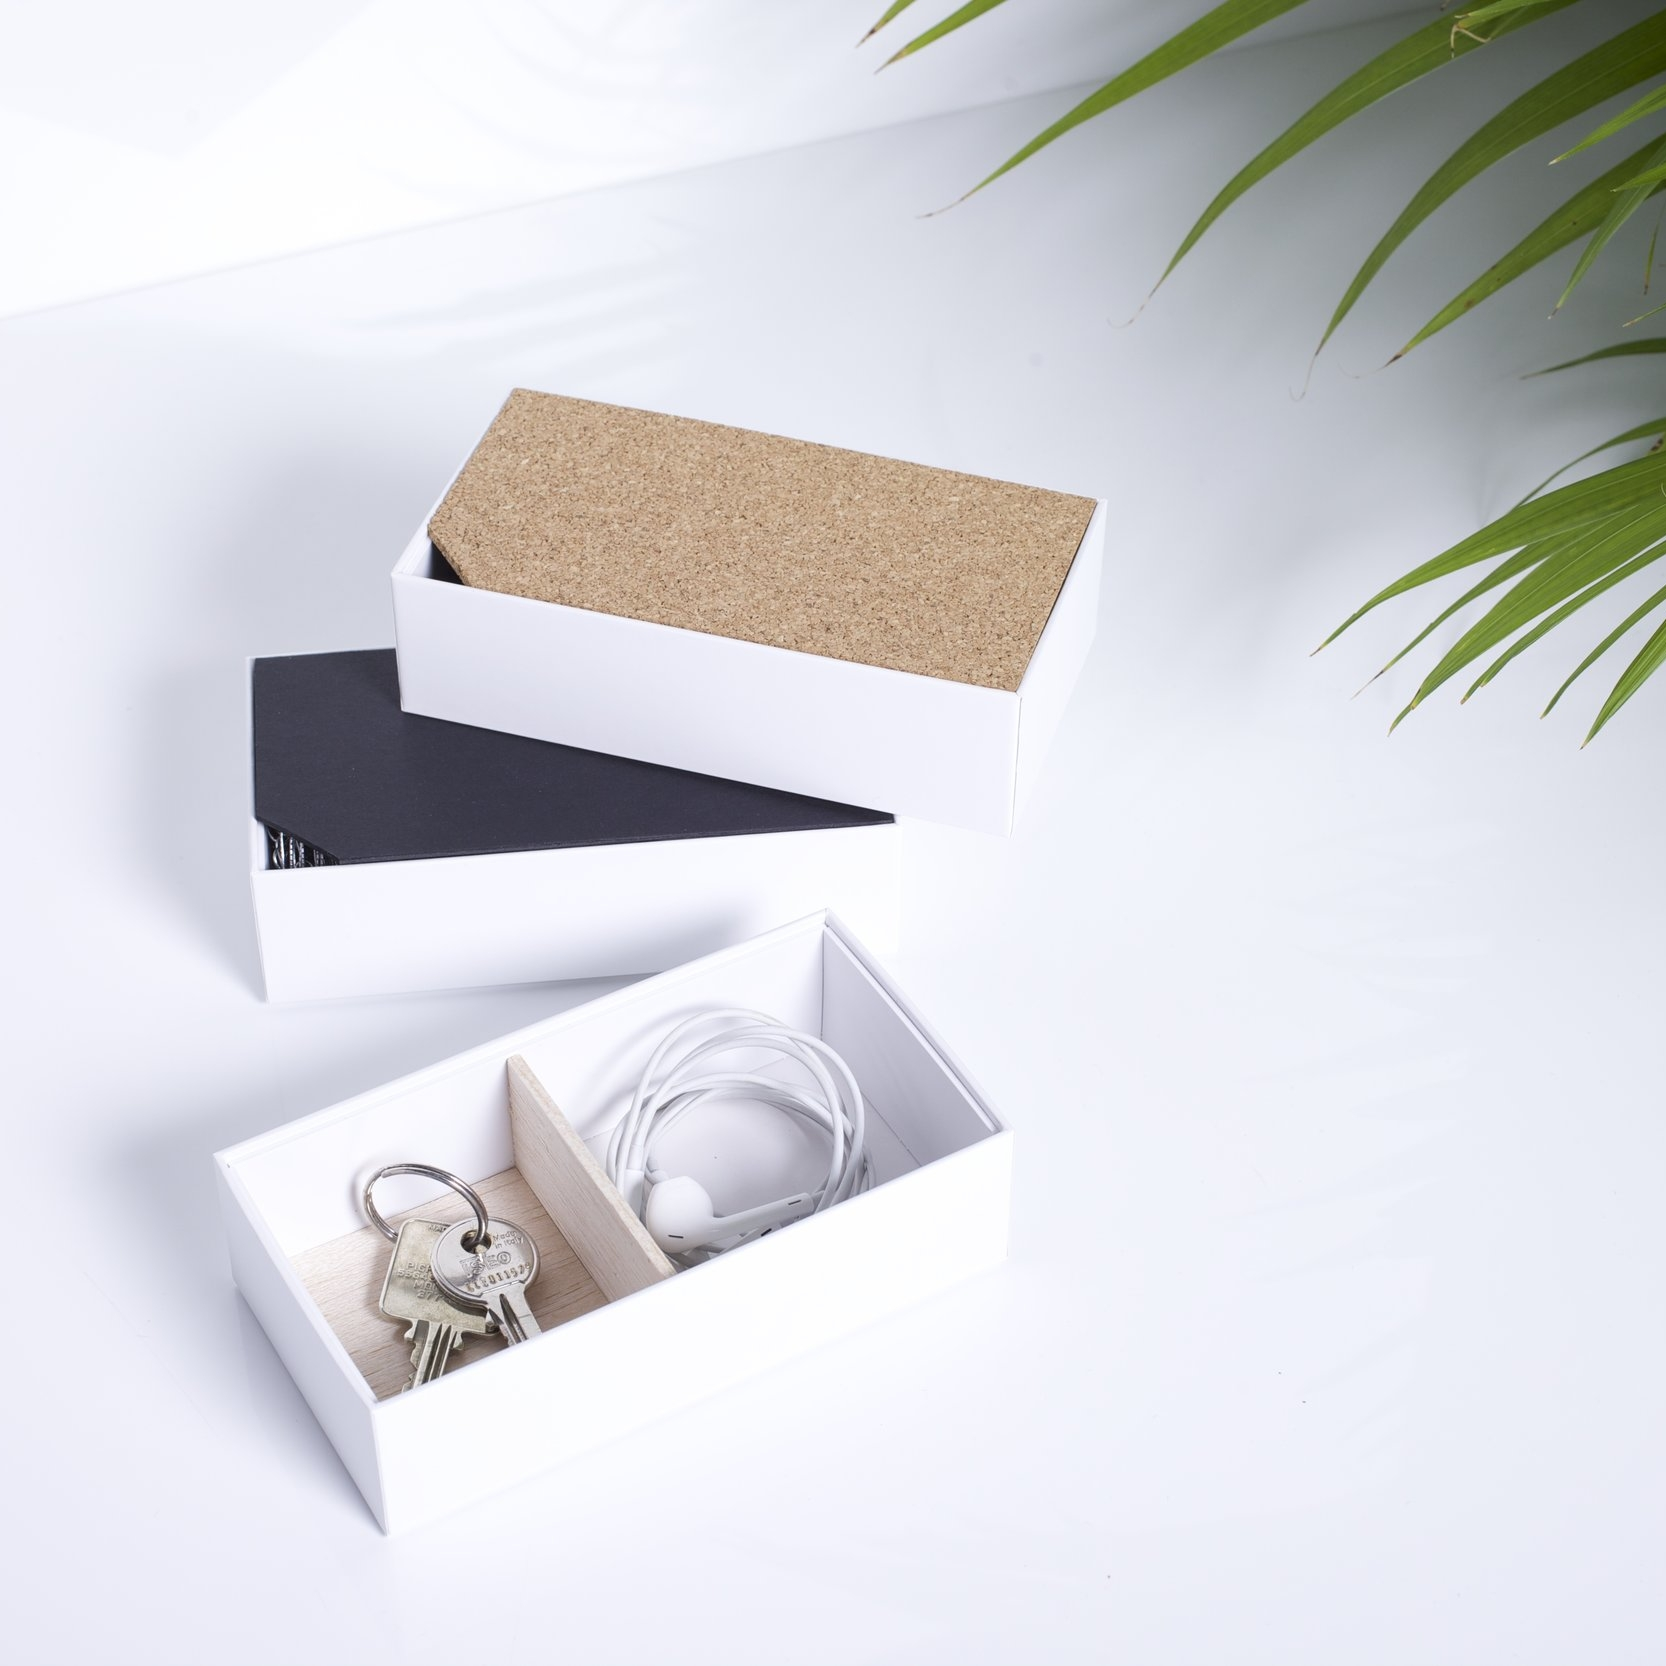 Small Organizers - iPhone box 4, 5, SE, 6 or 6s